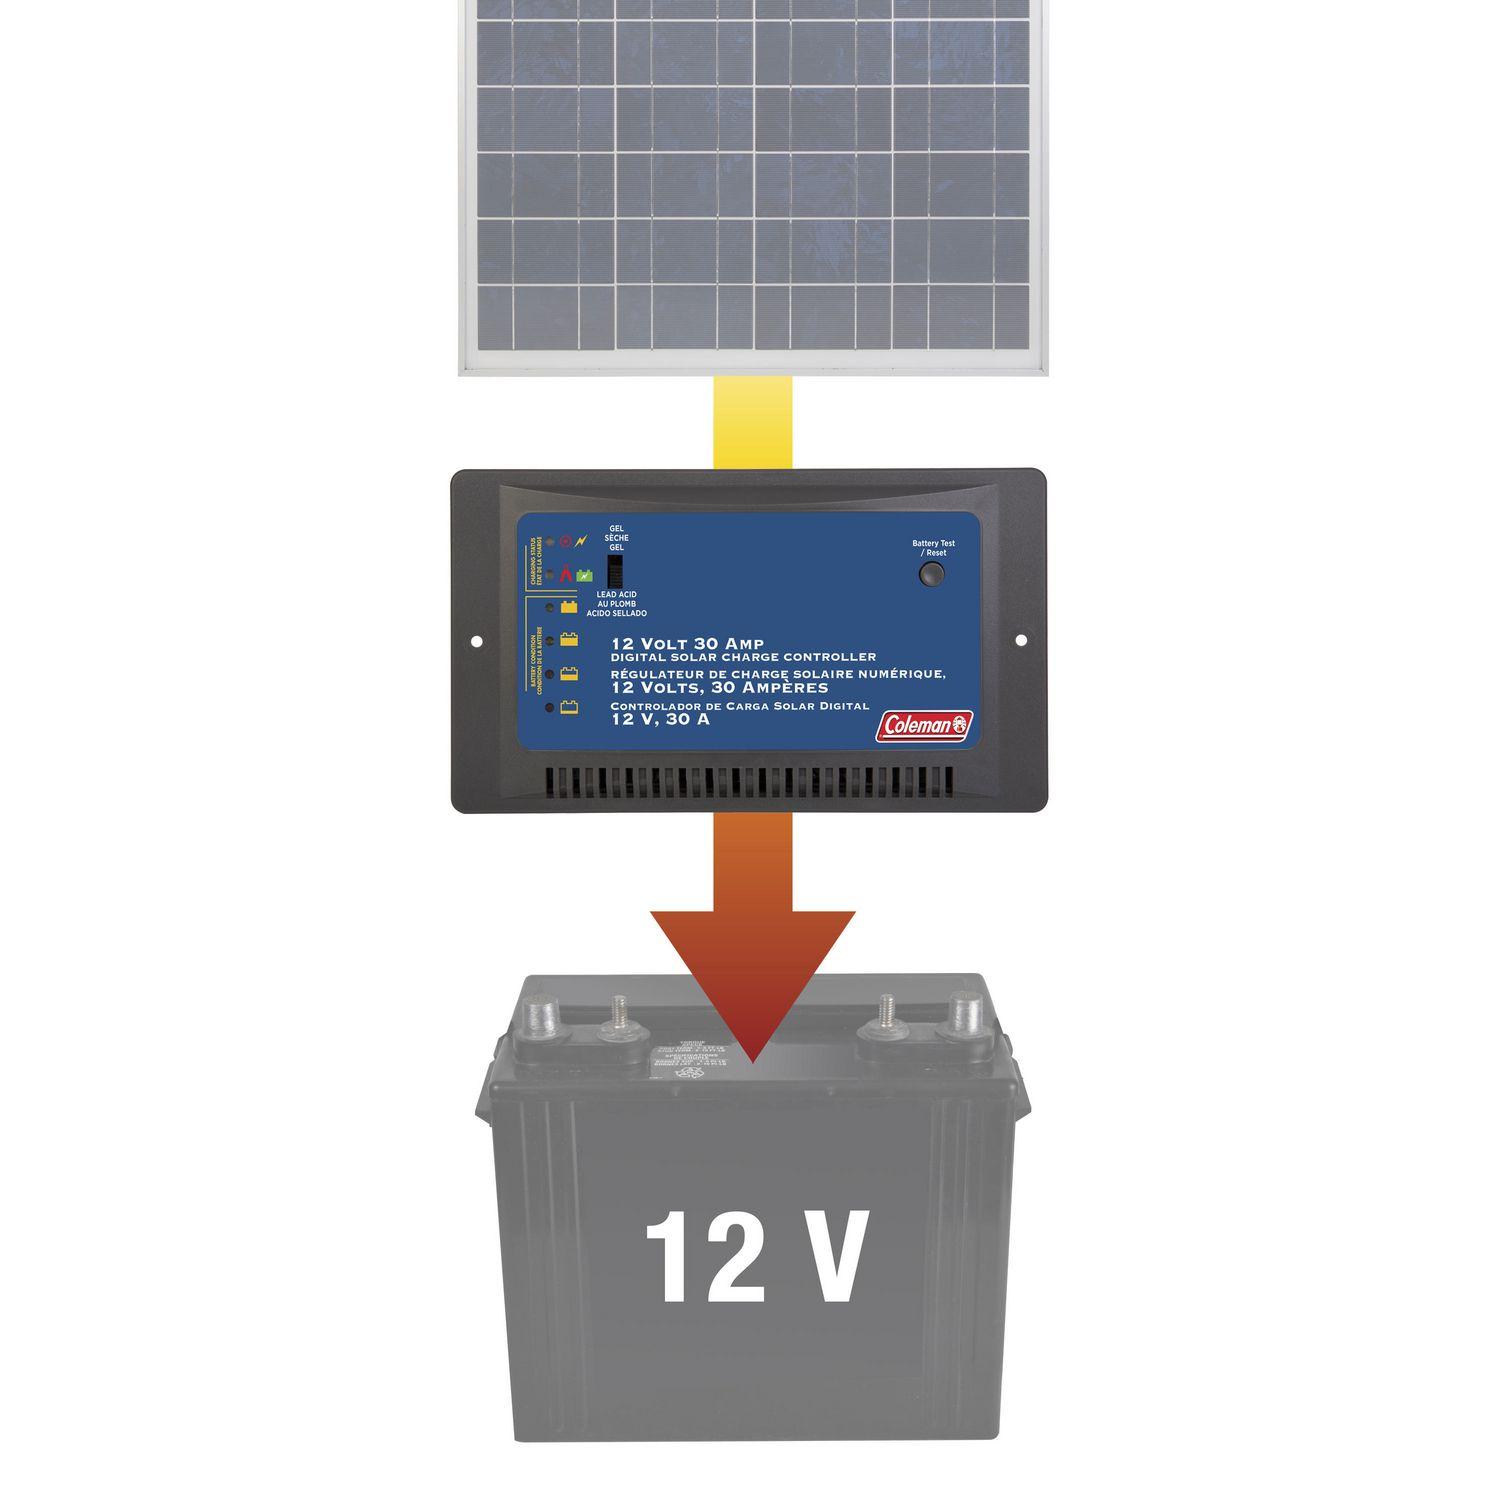 30 Amp 12 Volt Solar Charge Controller Walmart Canada Battery Charger With Overcharge Protection Electronic